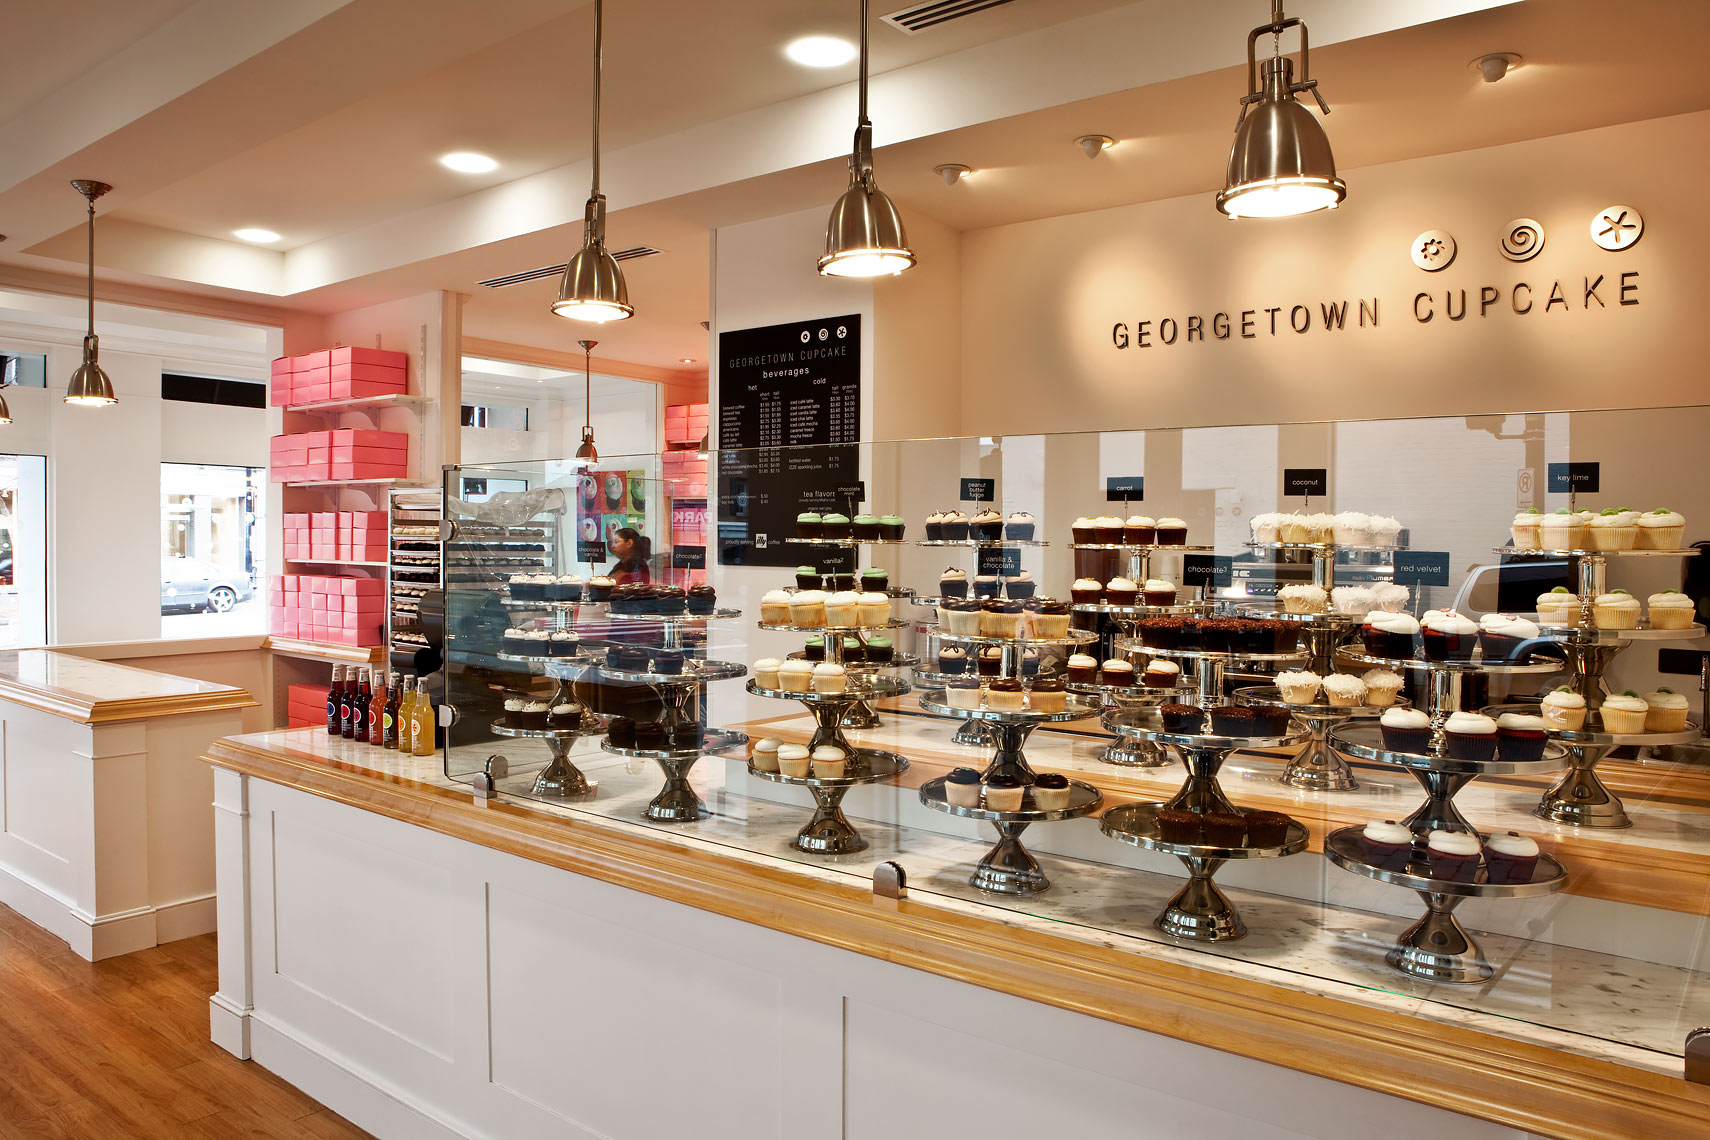 FOOD-Bakery1-Georgetown-Cupcake